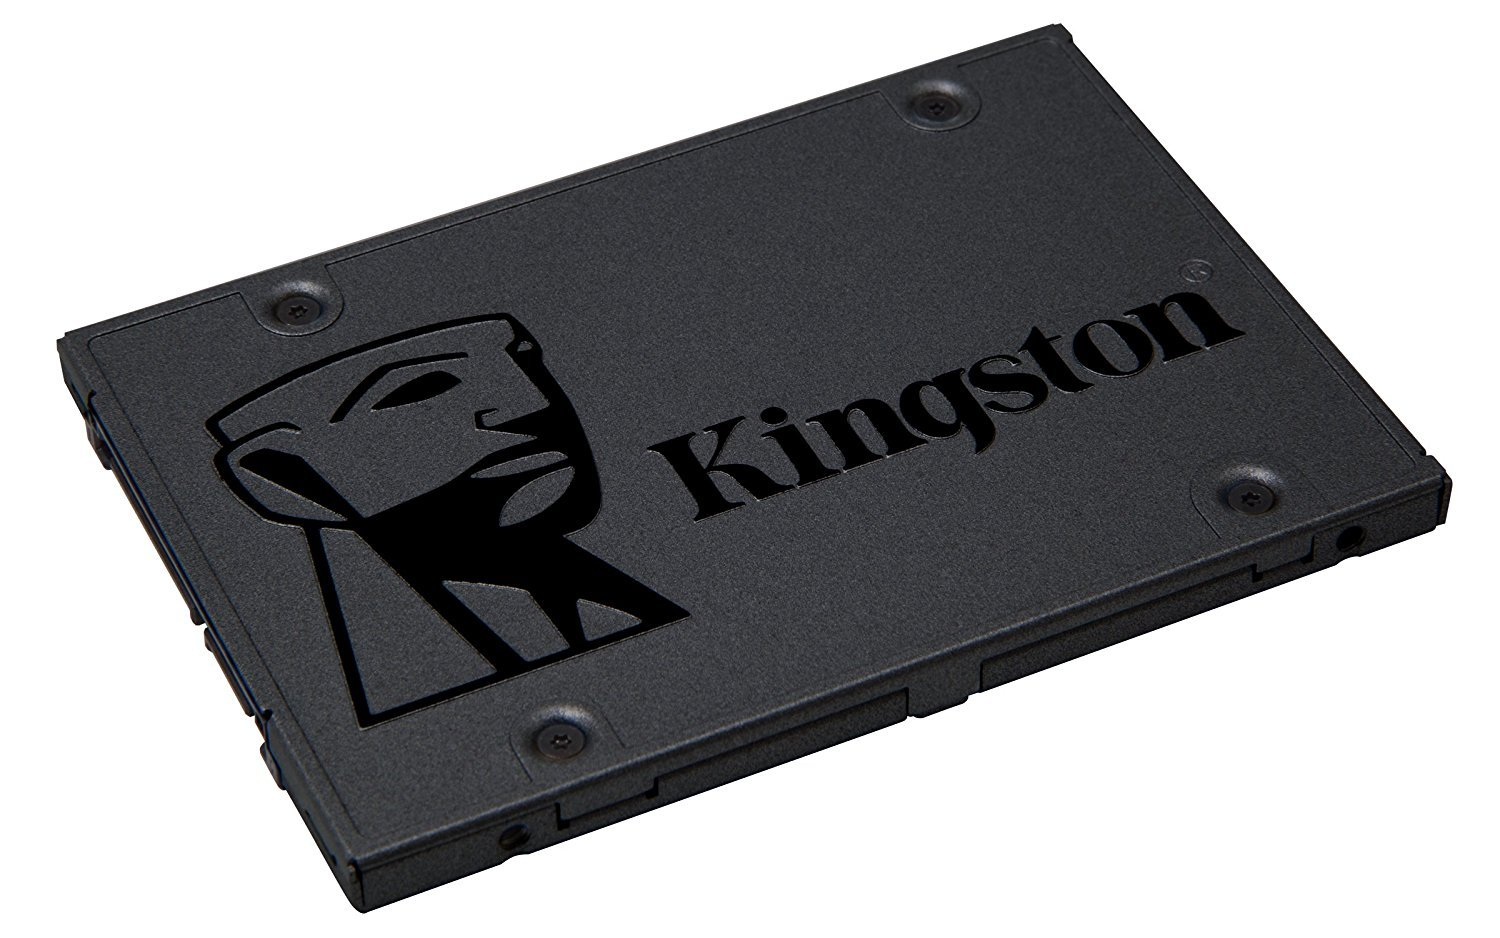 Kingston SSD A400 – Disco duro sólido de 240 GB  (2.5″ SATA 3)